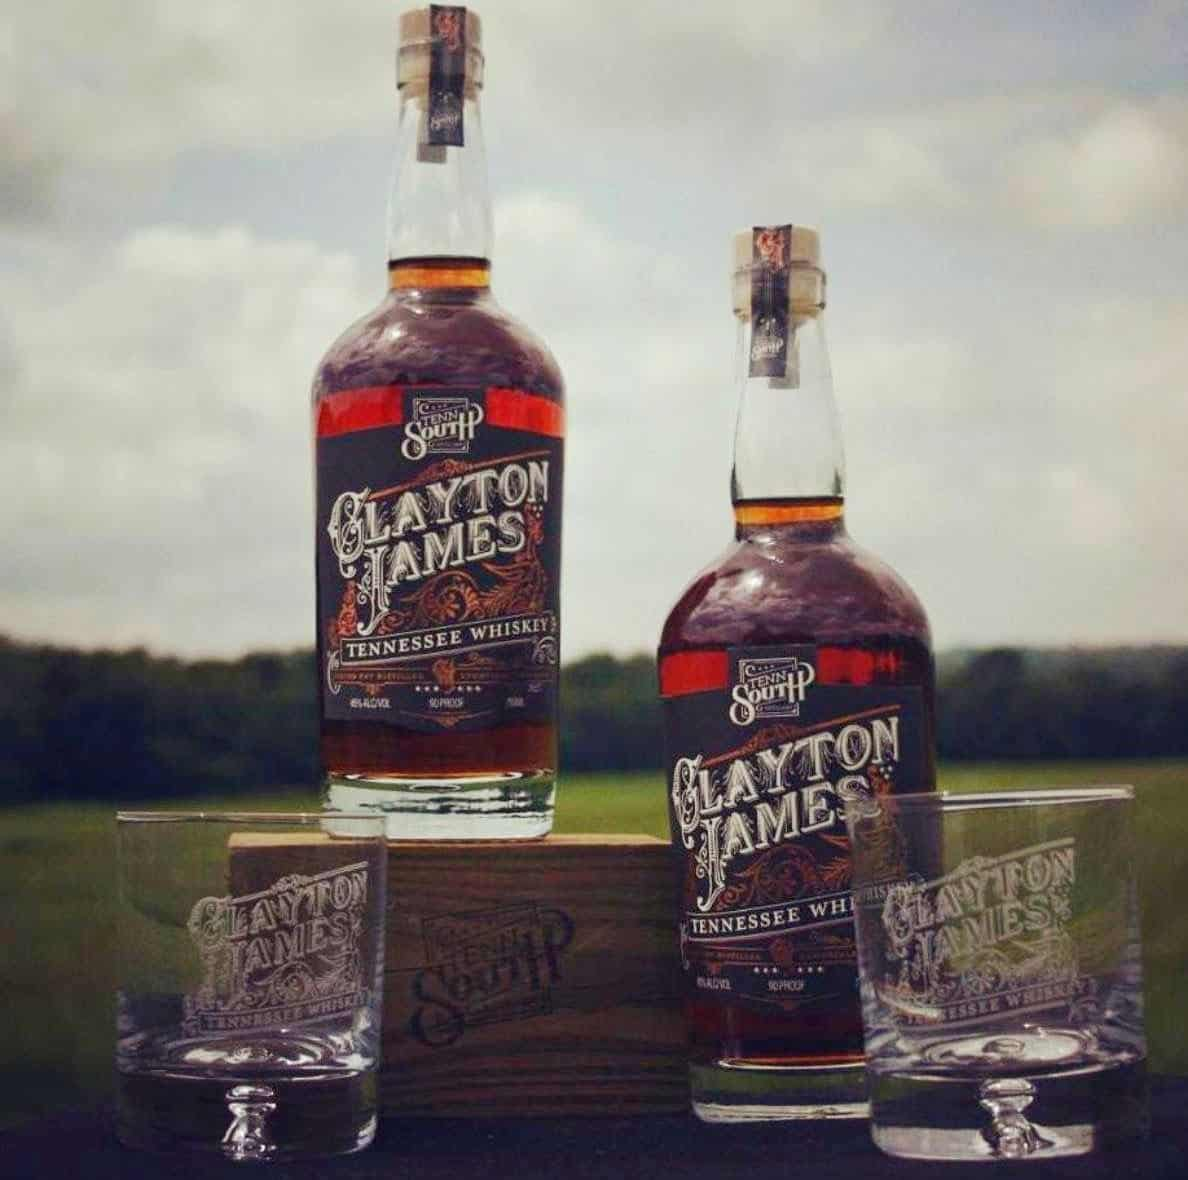 Clayton James Tennessee Whisky